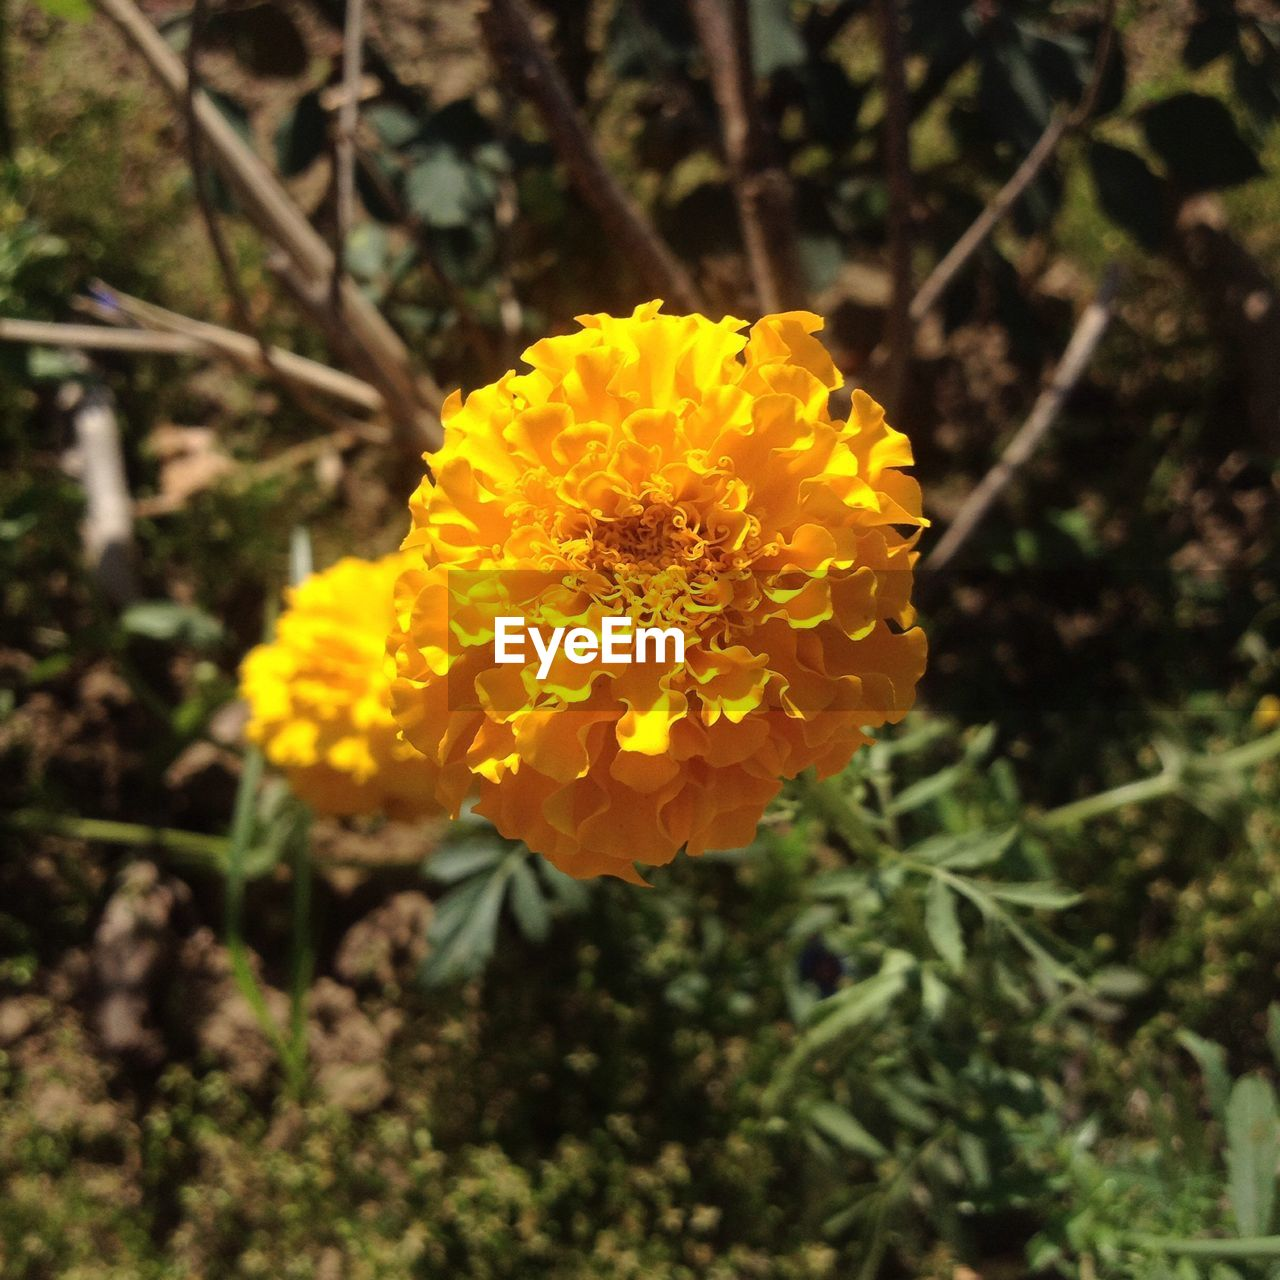 flower, yellow, growth, nature, fragility, petal, freshness, flower head, plant, beauty in nature, botany, outdoors, blooming, no people, marigold, day, close-up, focus on foreground